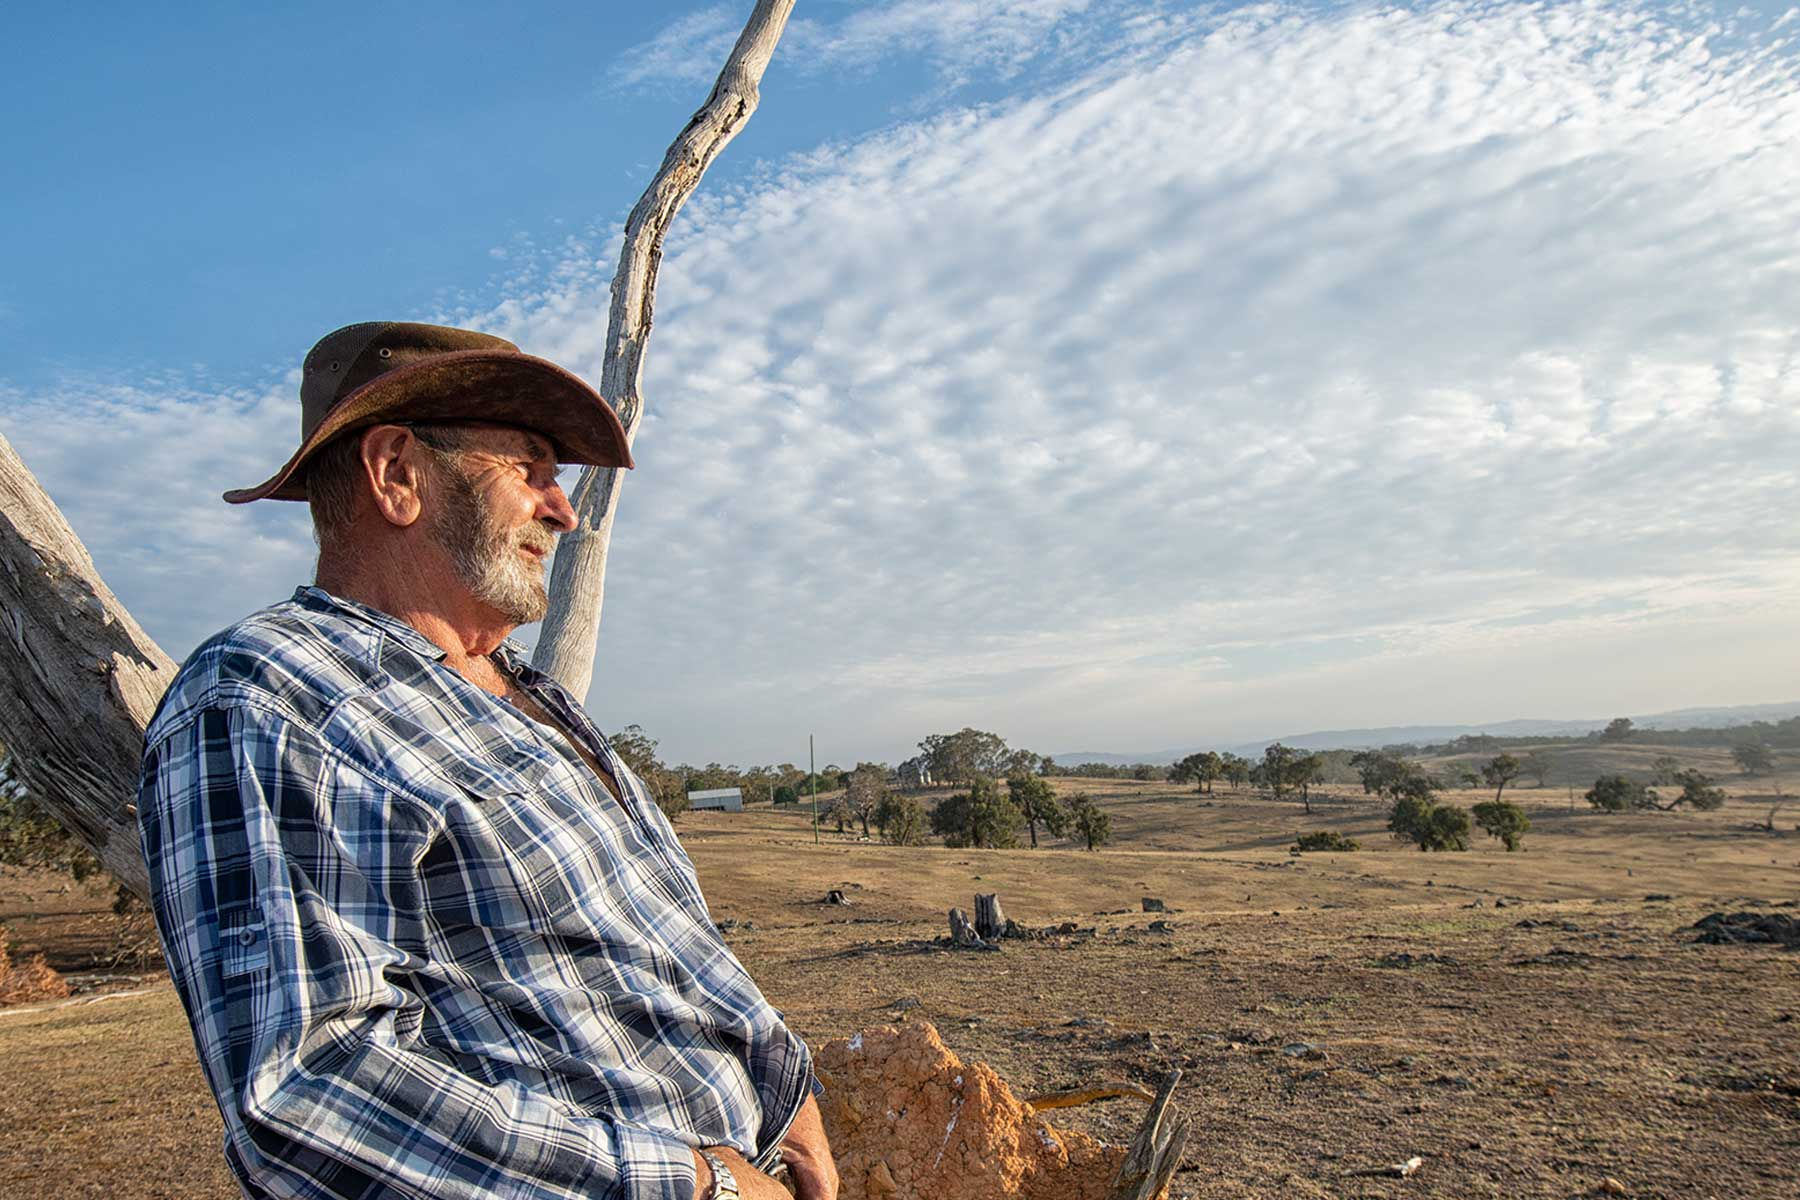 Farmer looking out over drought affected farm land